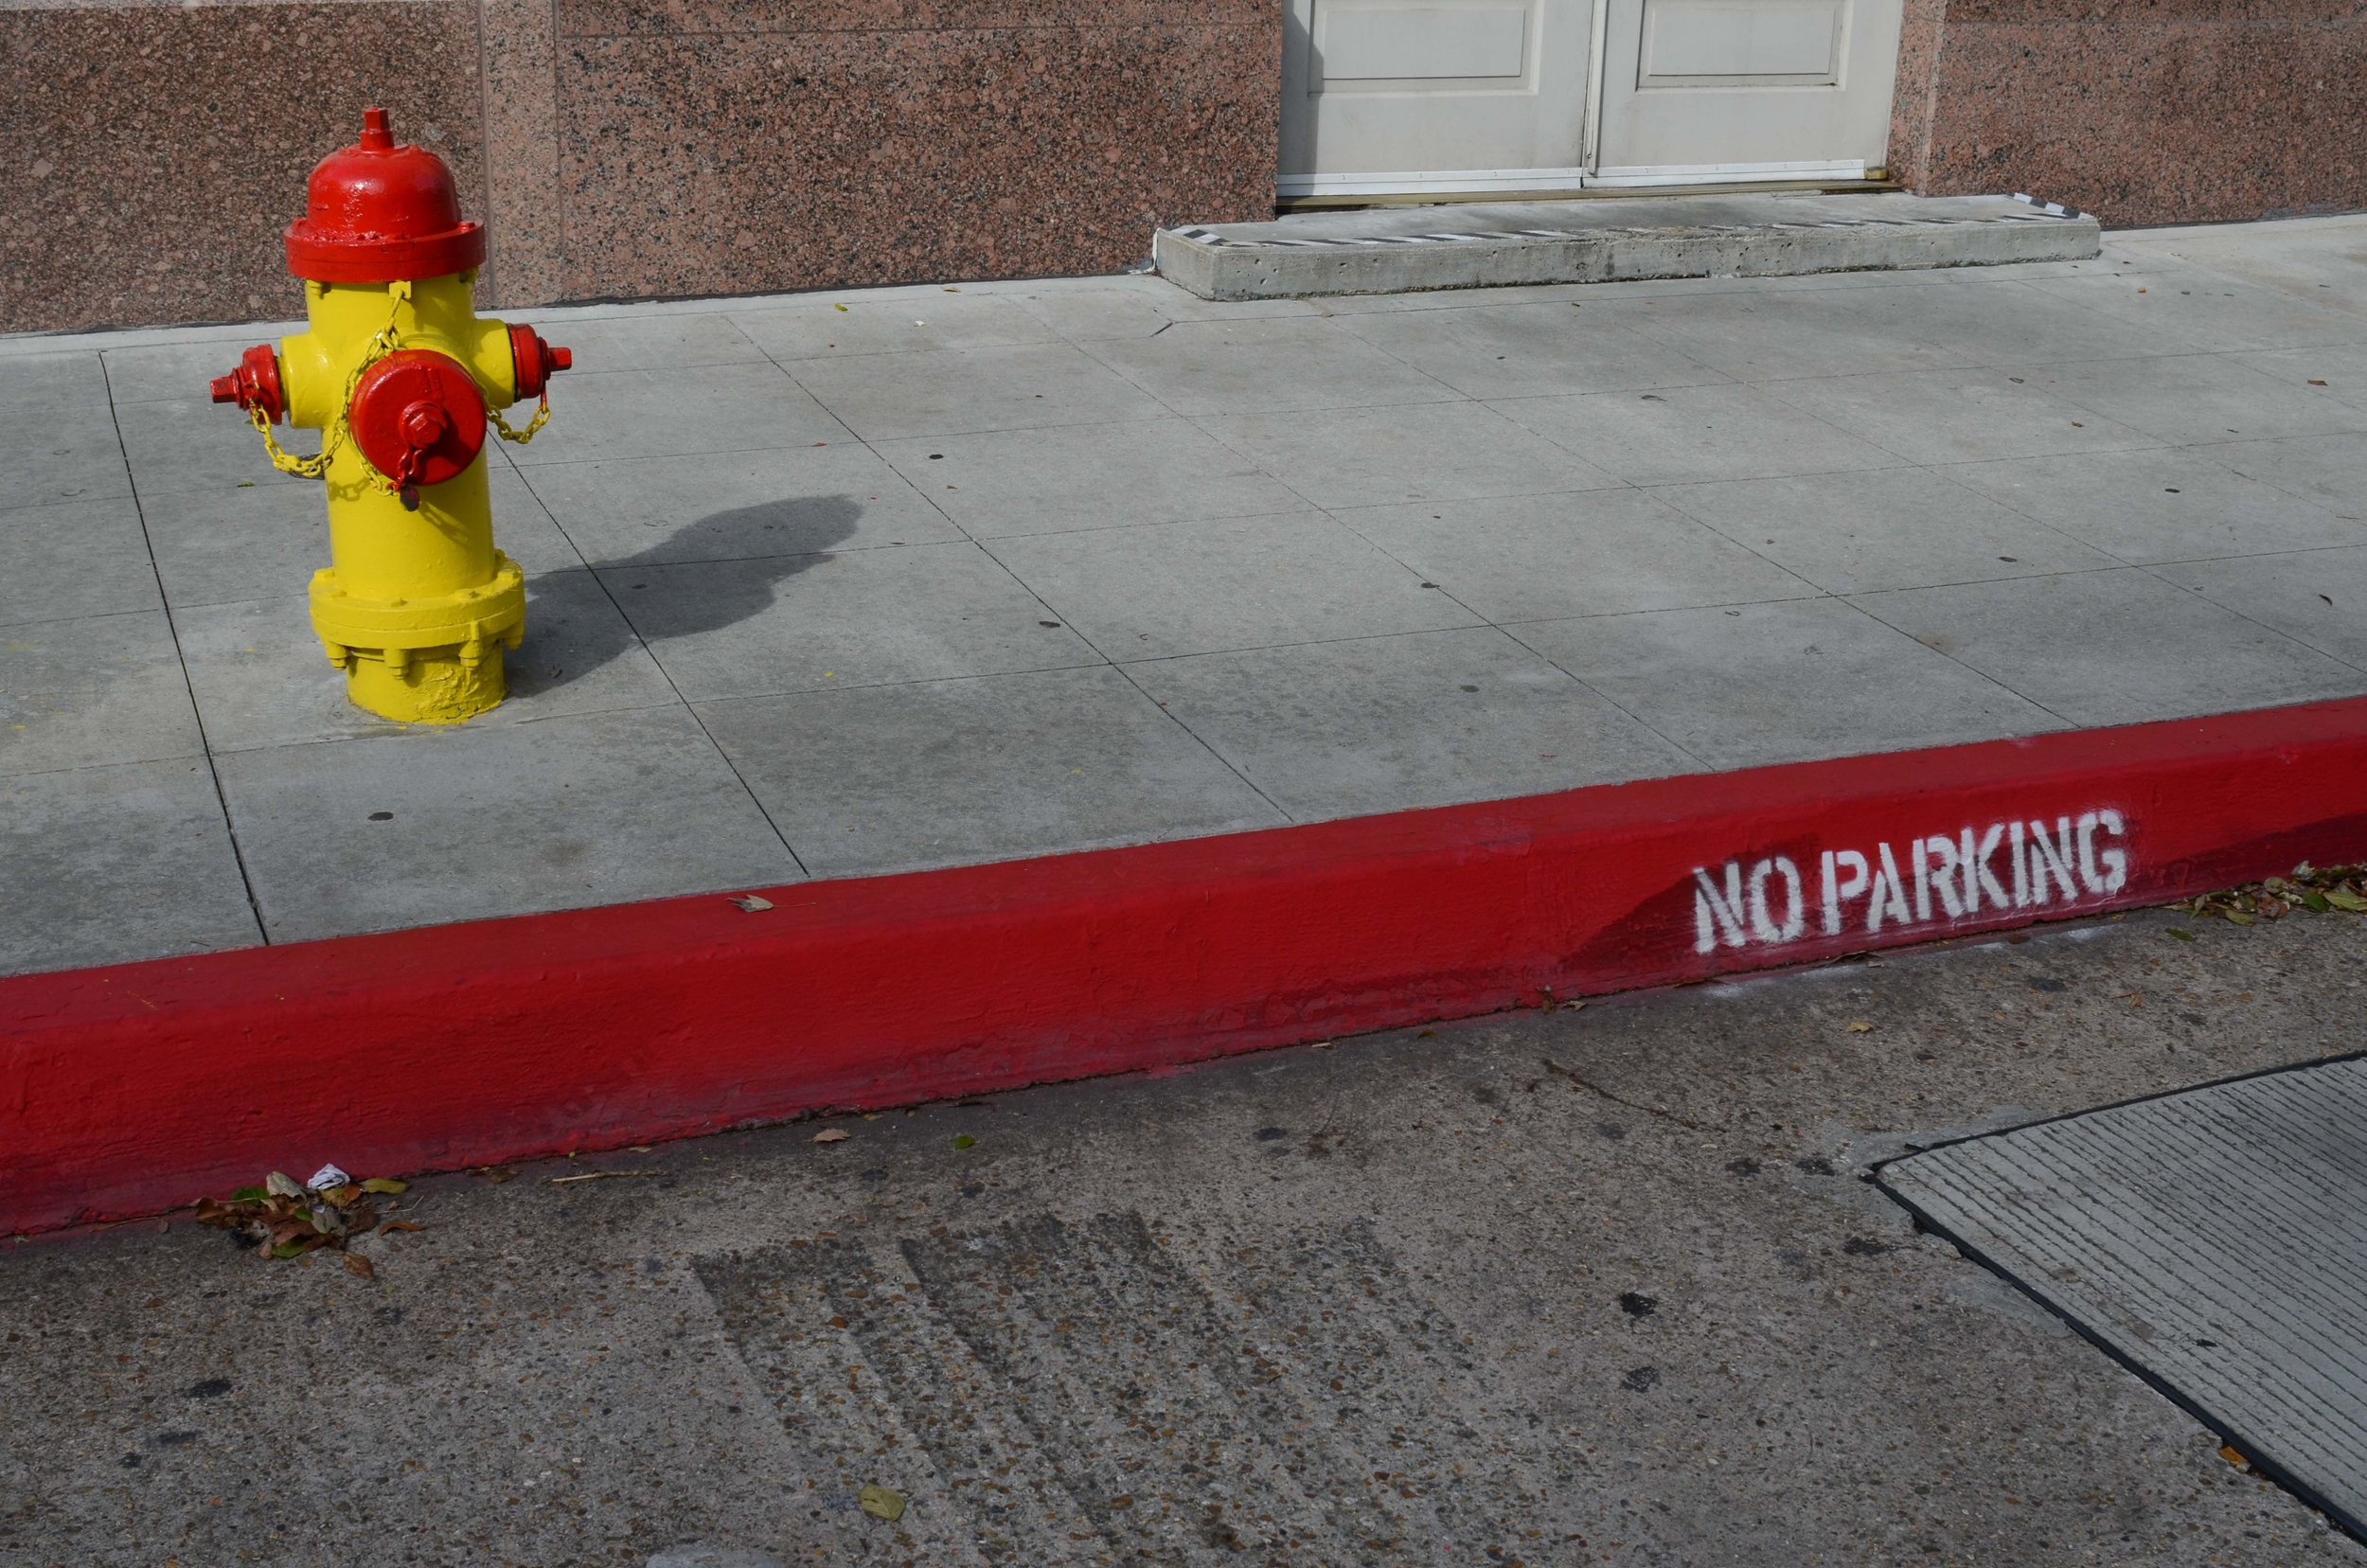 Fire hydrant, Baton Rouge, Louisiana.